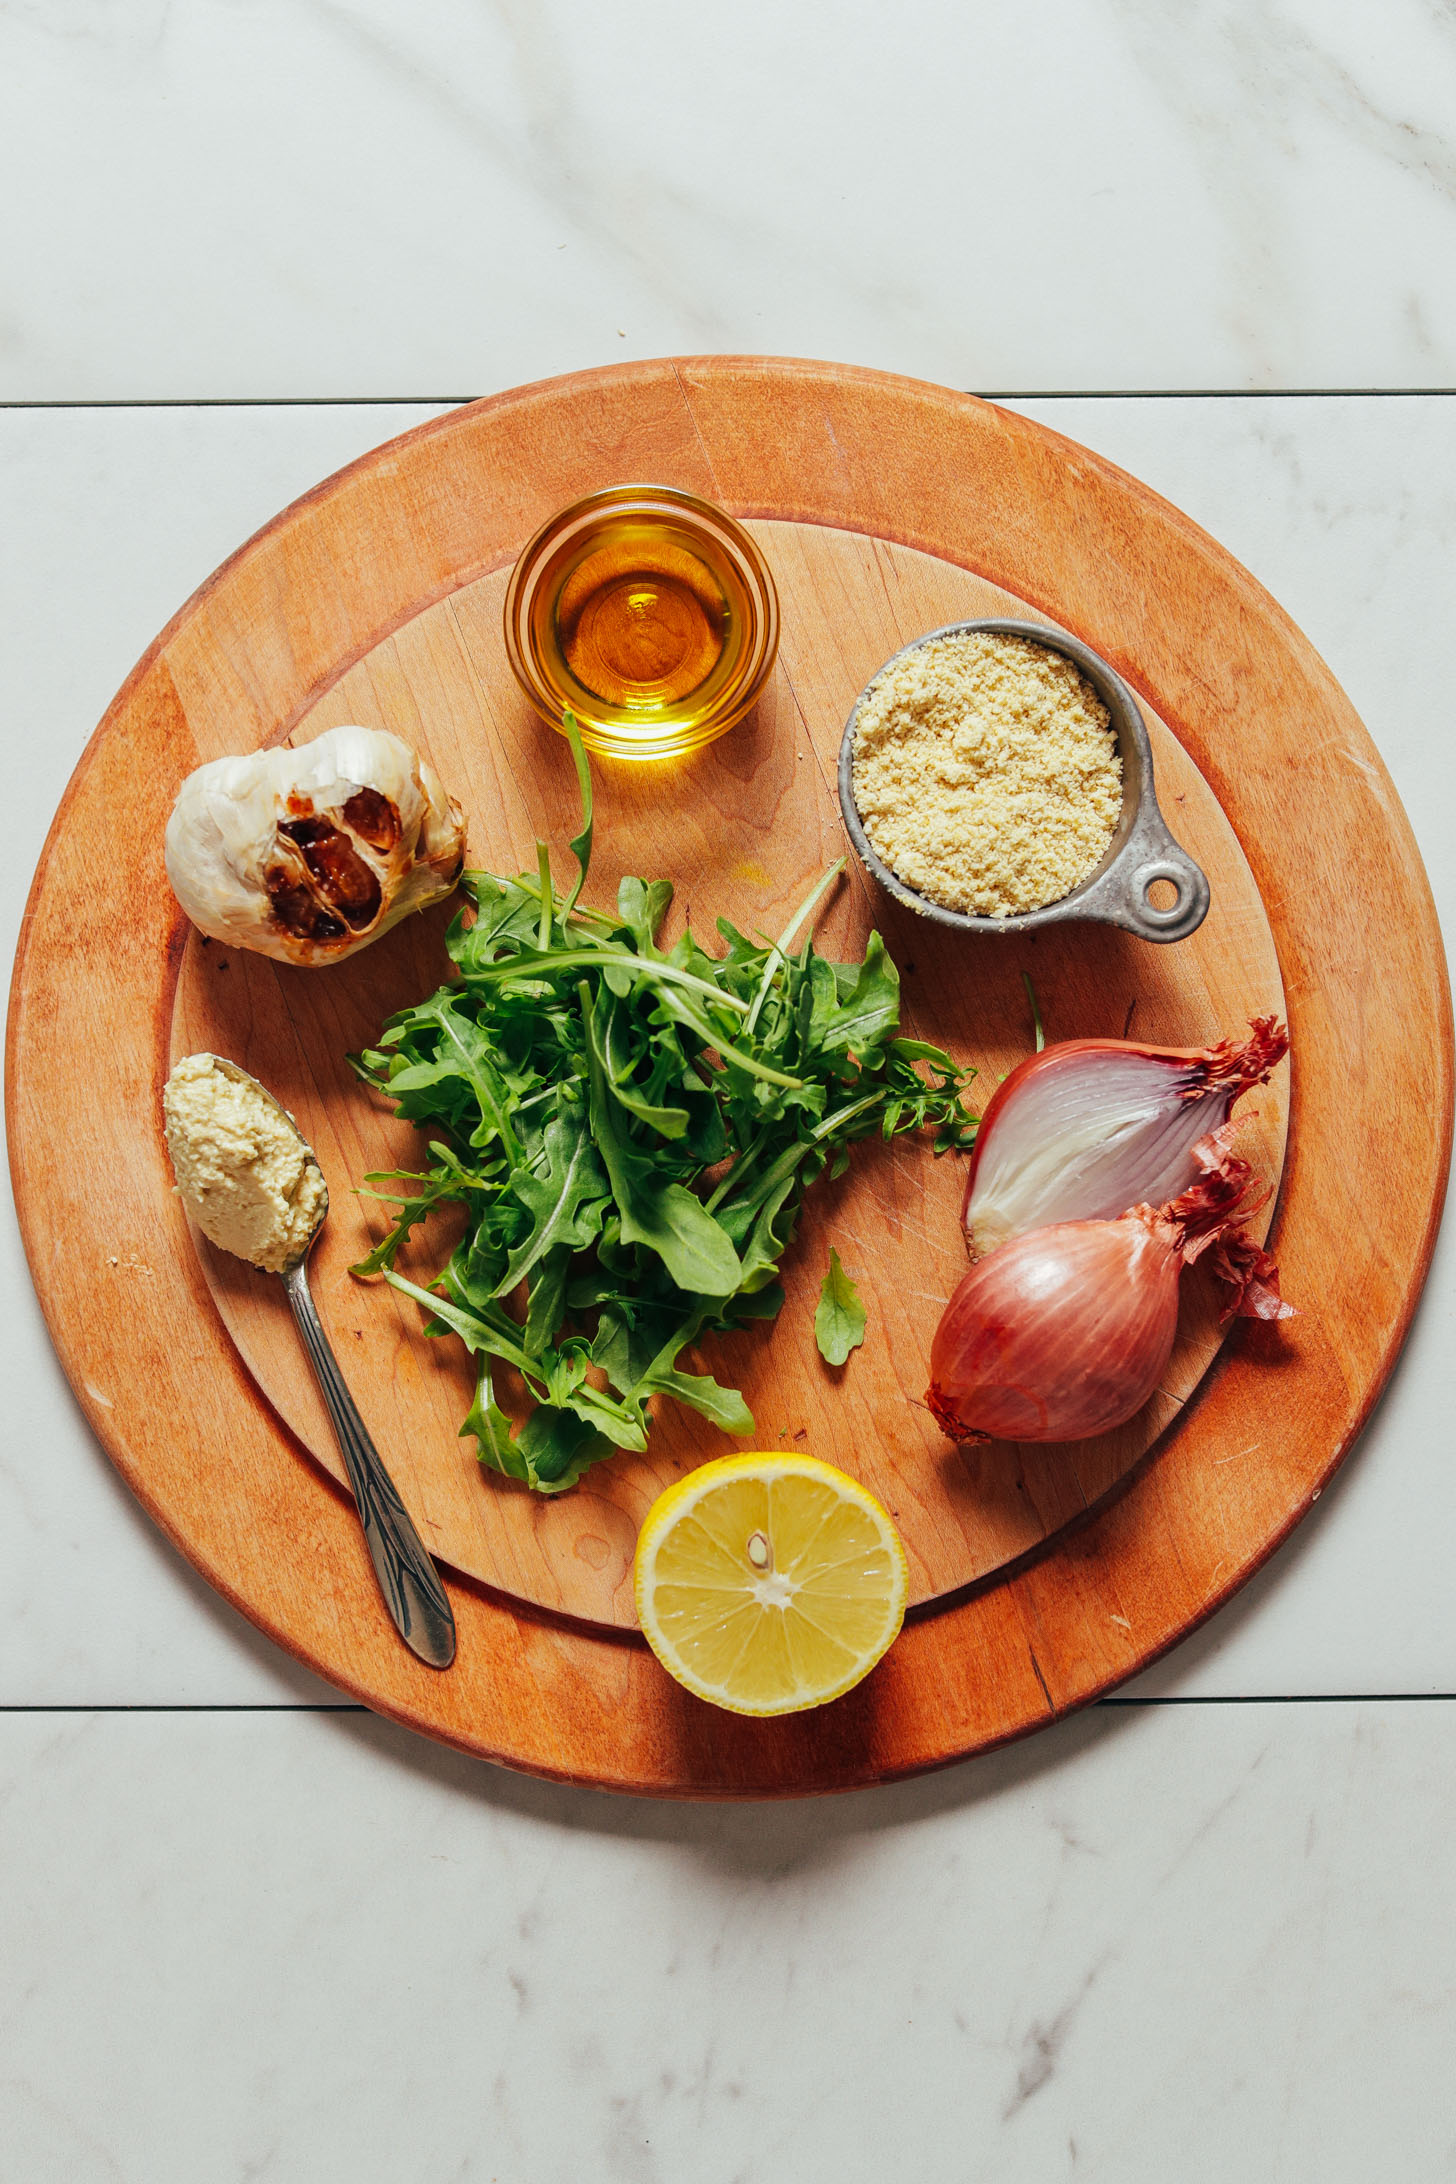 Wood cutting board with arugula, shallots, garlic, lemon, and other ingredients to make our simple Lemony Arugula Salad with Crispy Shallot recipe